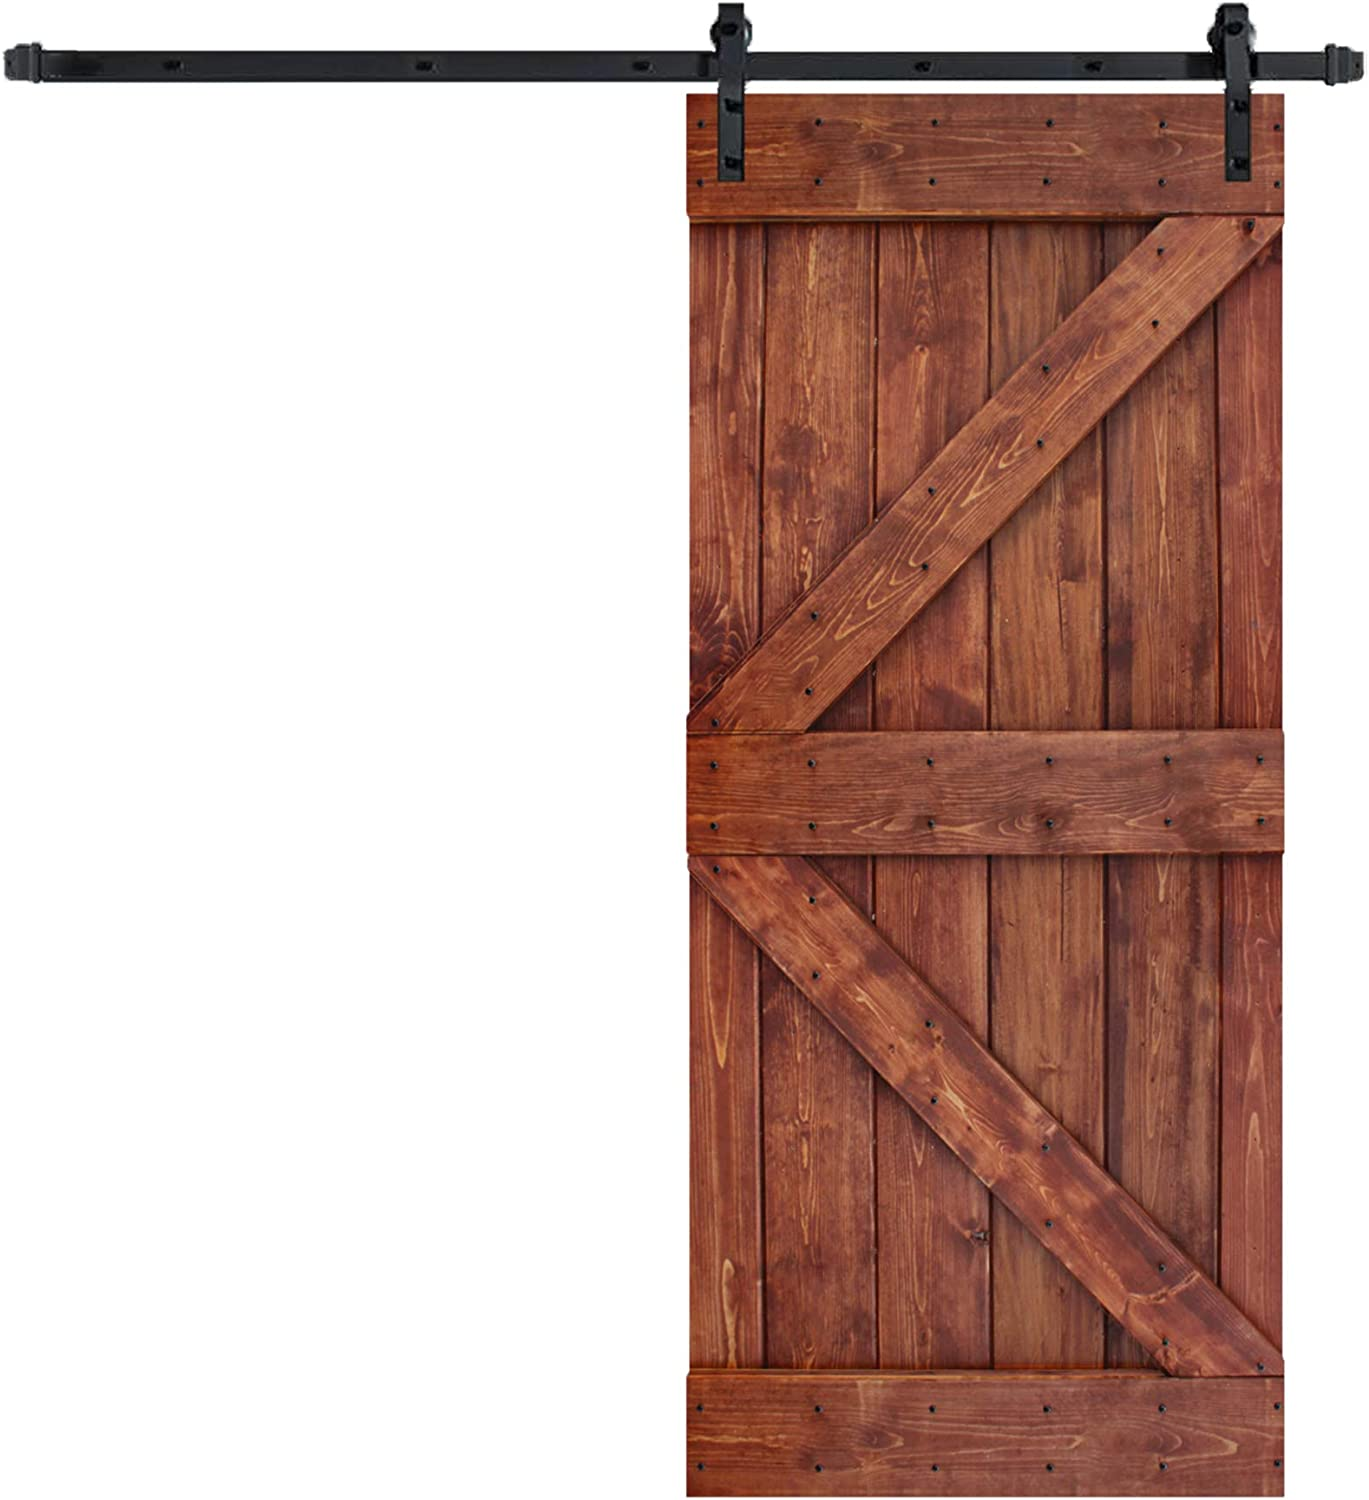 Department store 36in Outlet ☆ Free Shipping X 84in K Series DIY Knotty Sliding Pine Interior Barn Wood